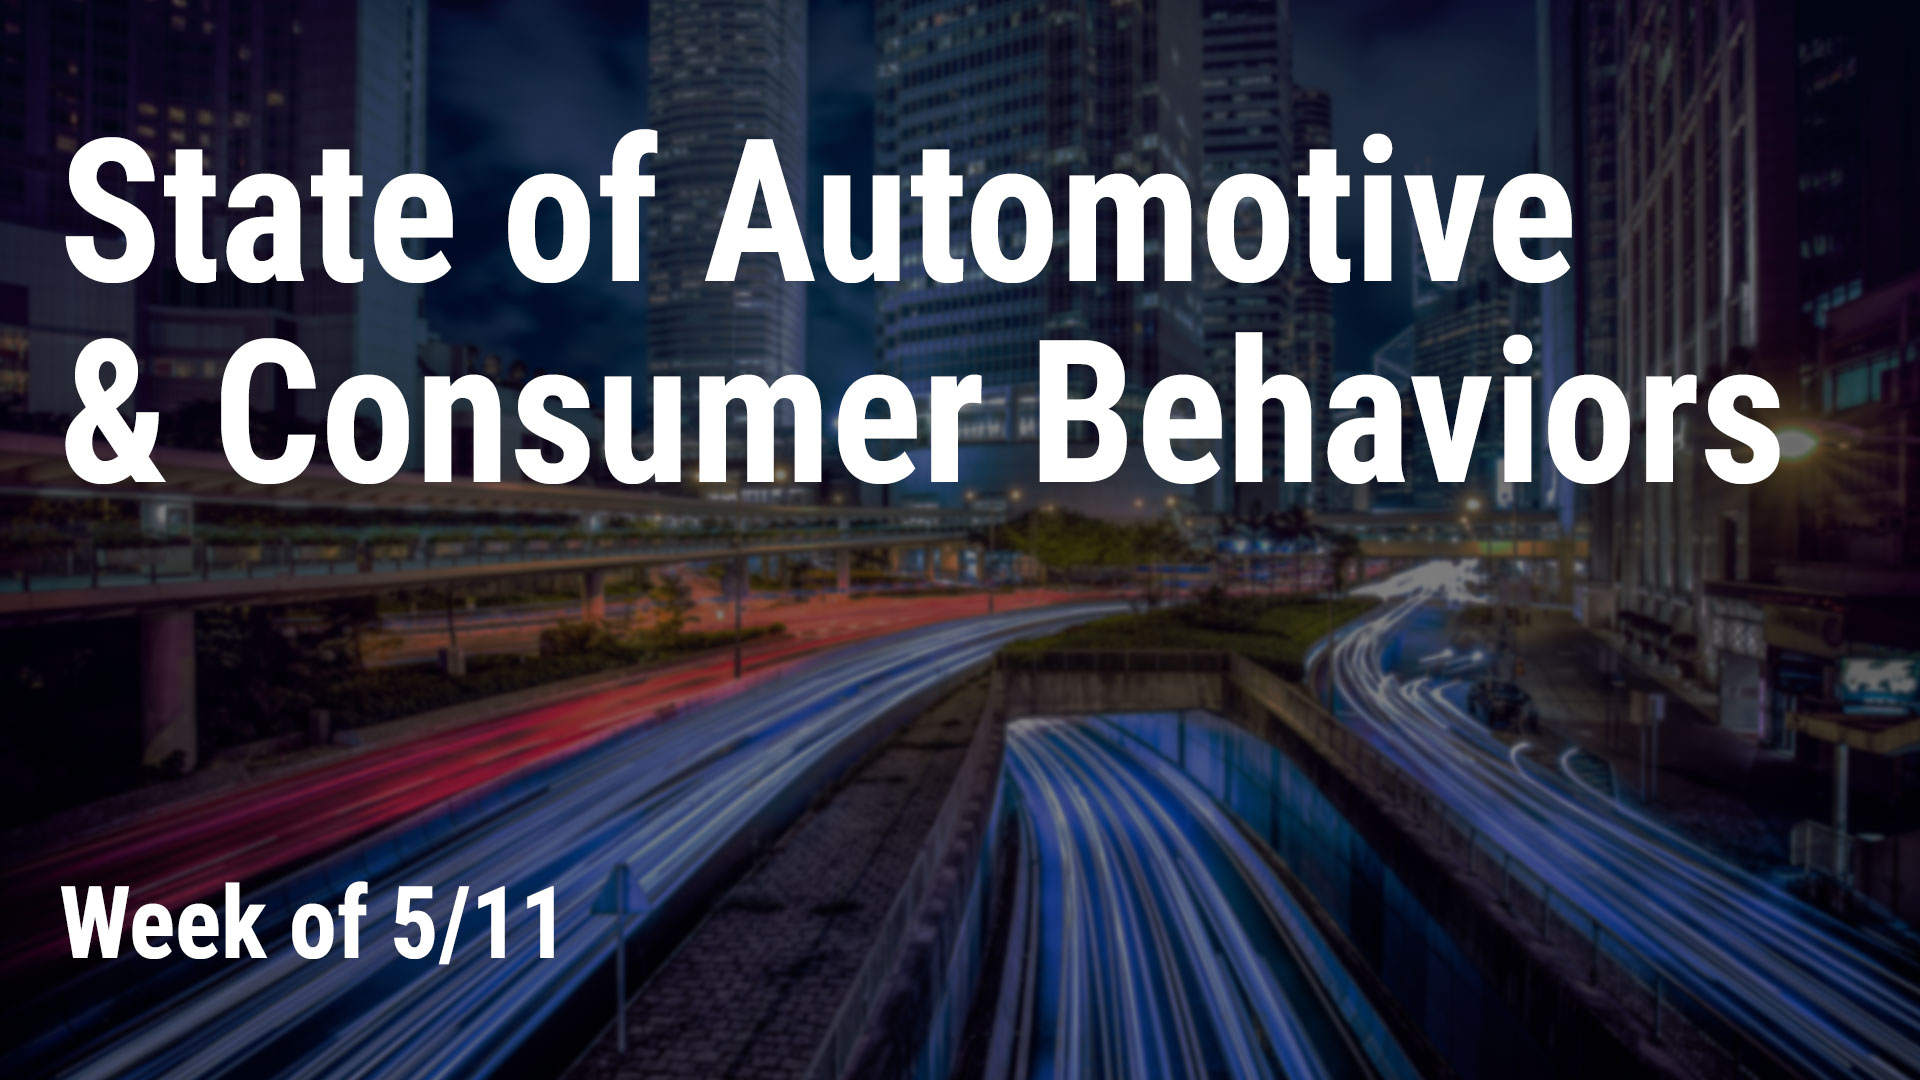 State of Automotive & Consumer Behaviors, week of 5/11